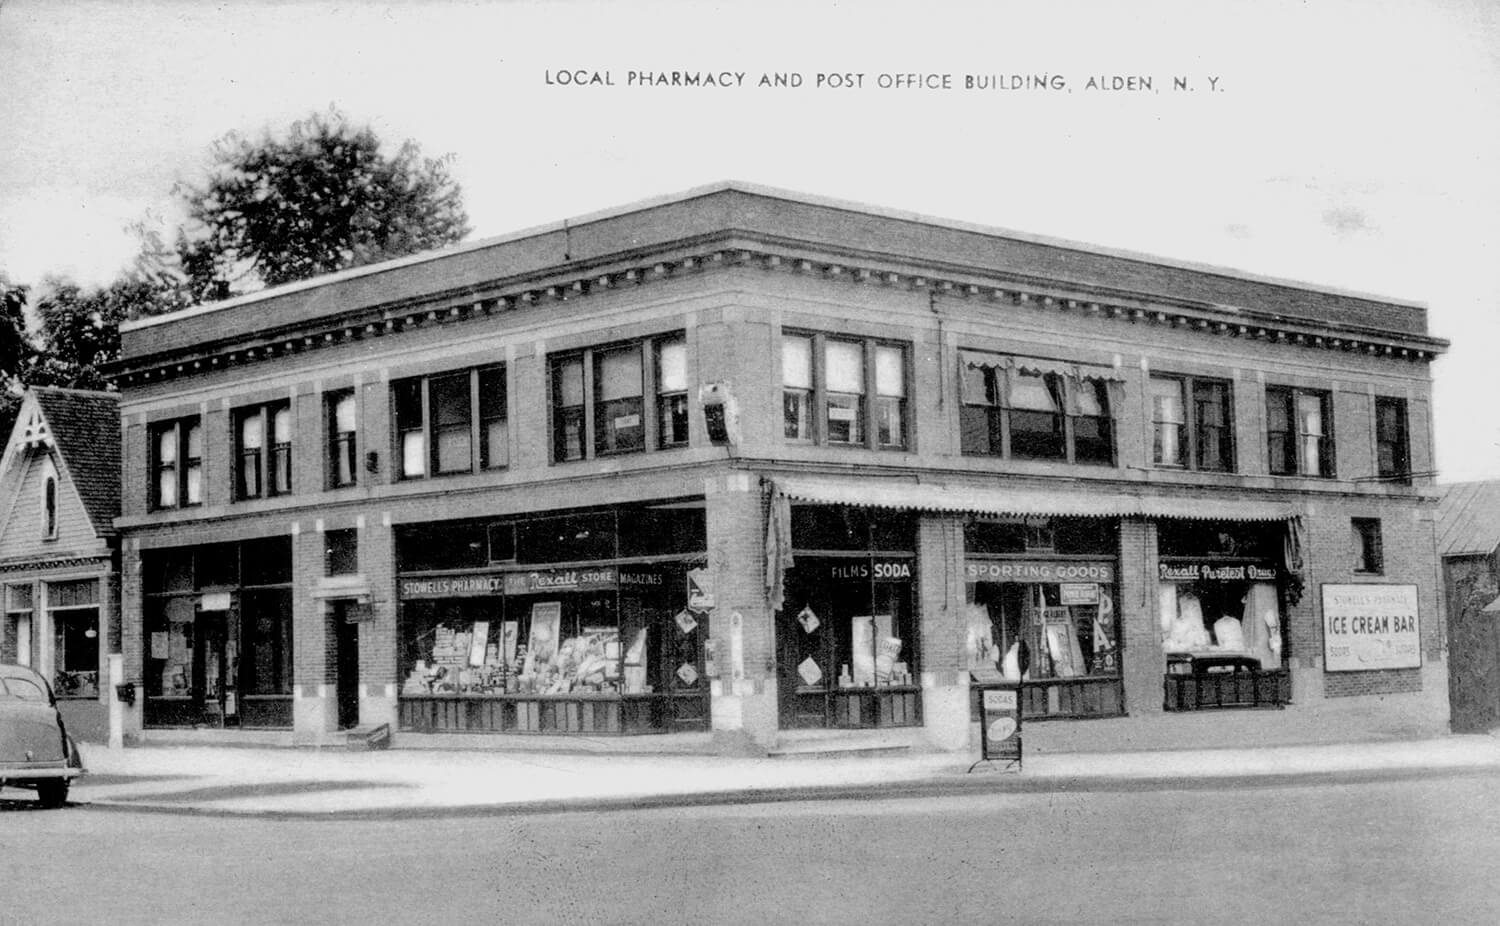 Alden Pharmacy from the 1950's